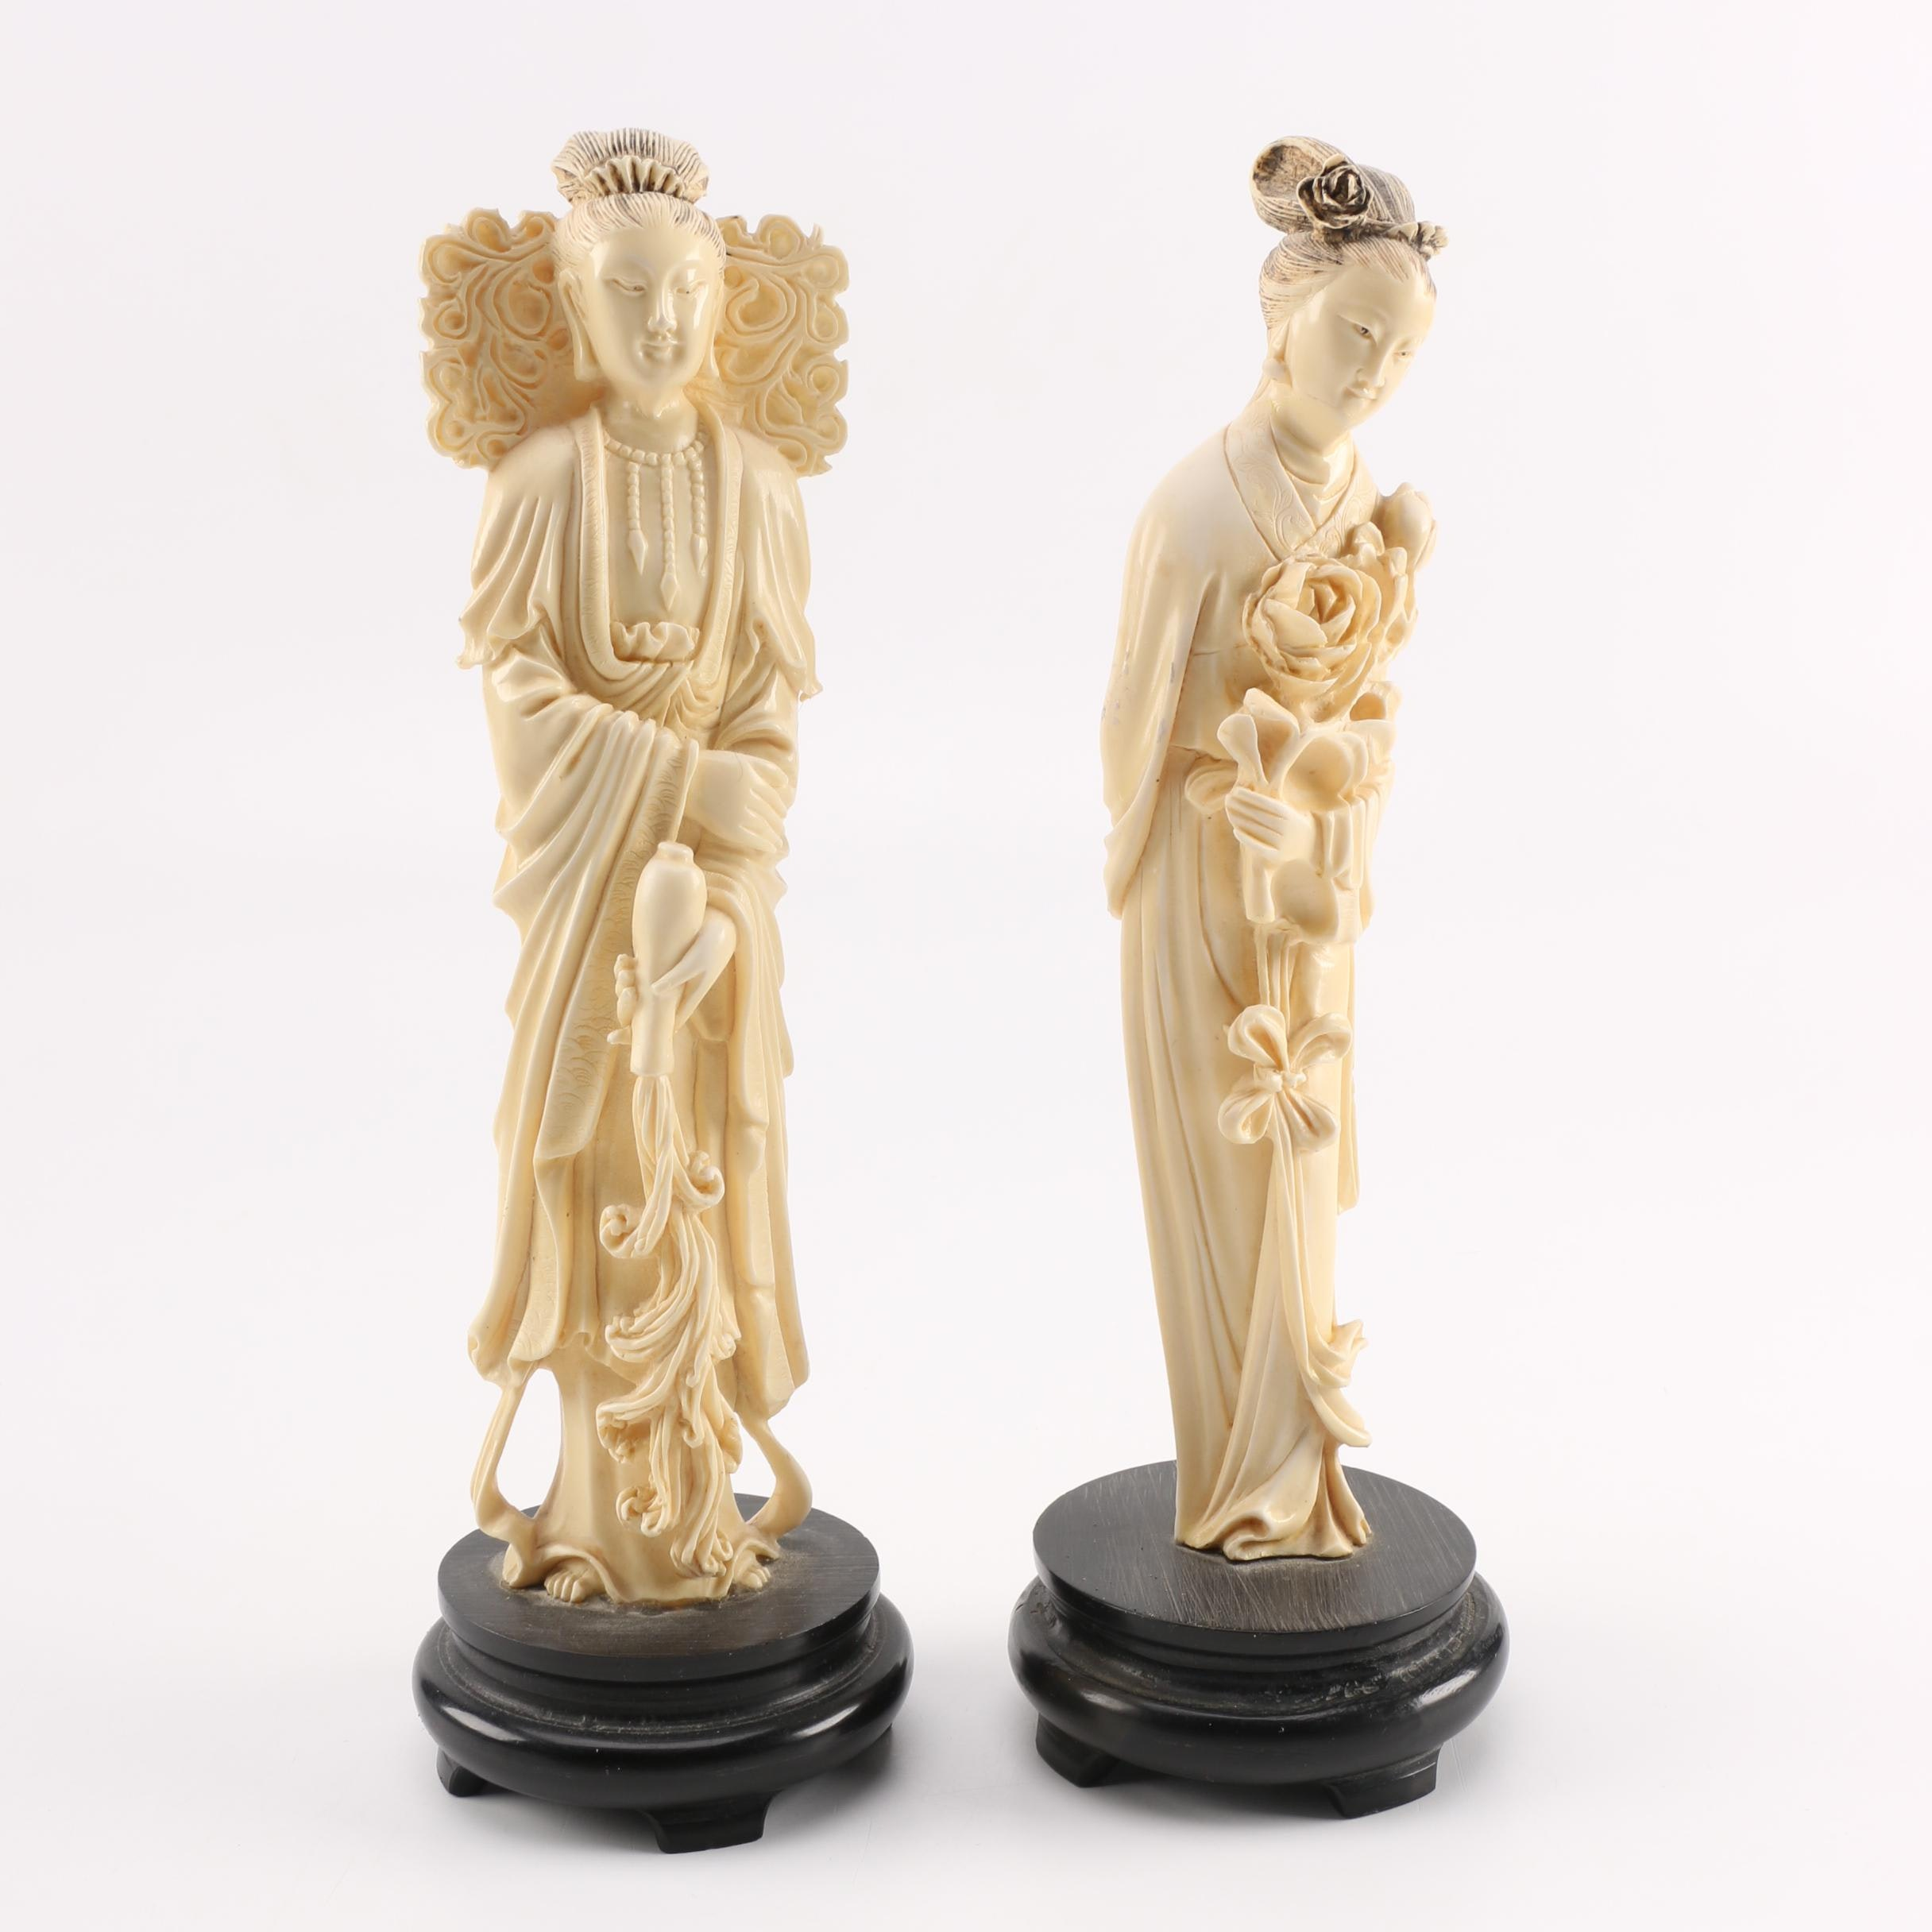 Cast Resin Asian Inspired Figurines